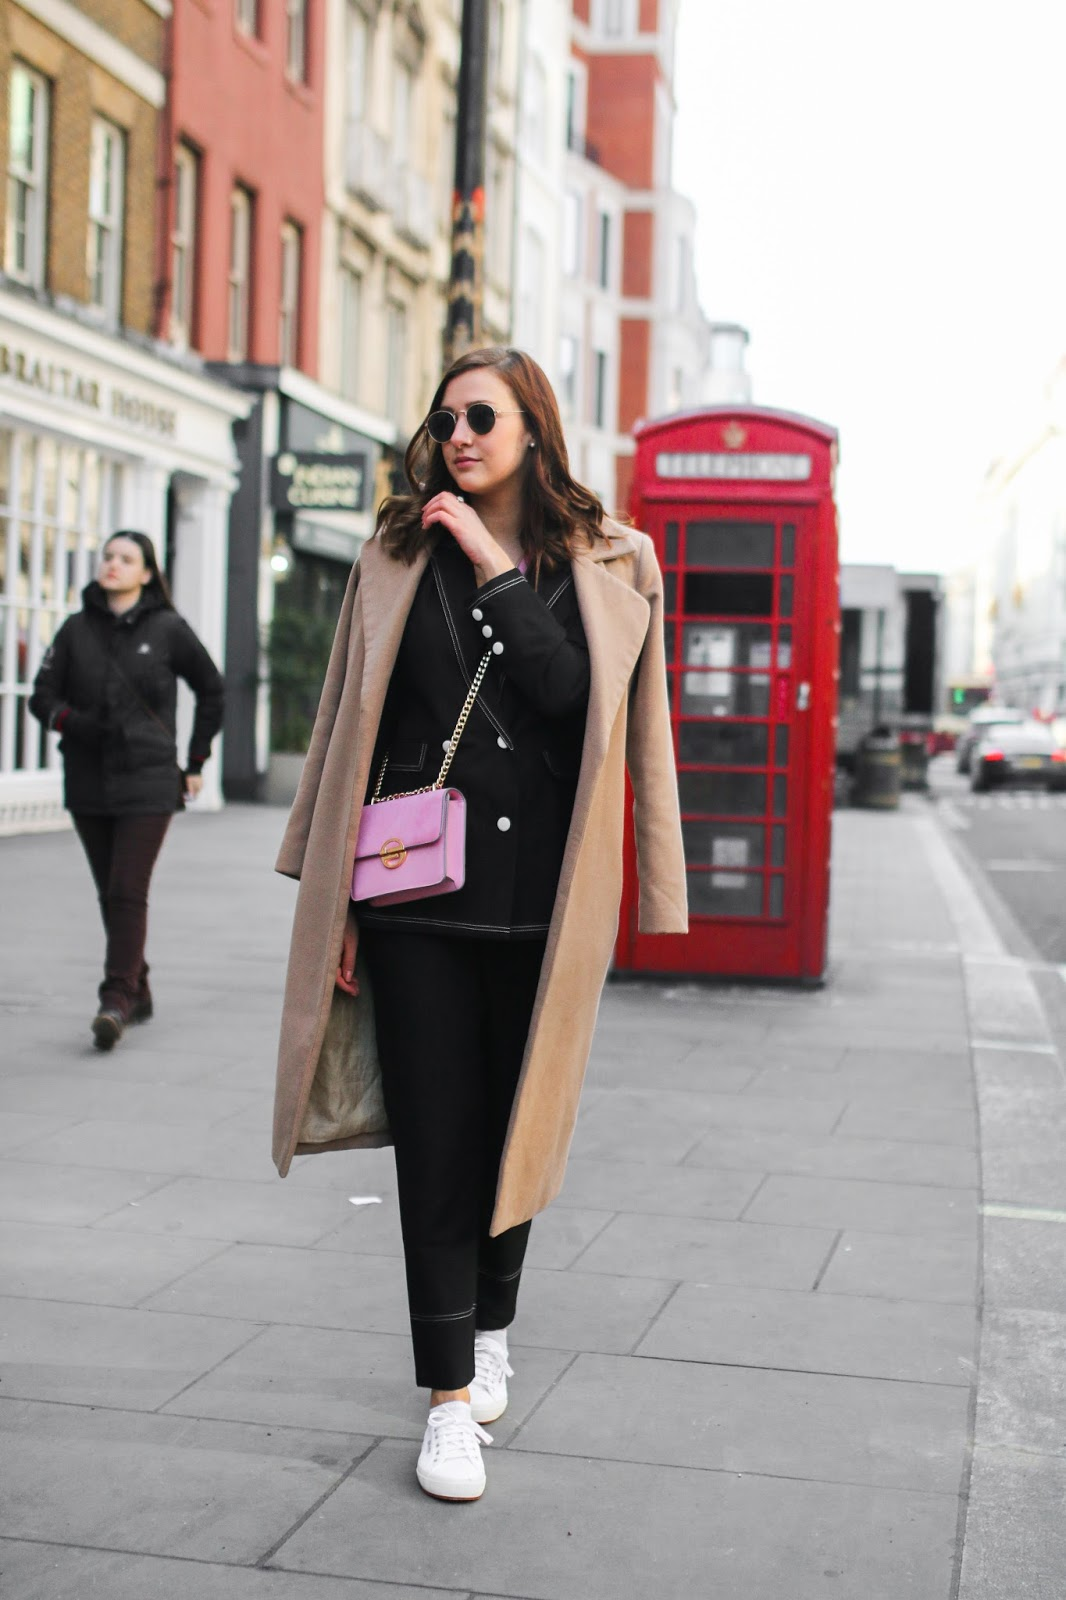 Lauren Rose Style - The Black Contrast Stitch Suit Missguided Trend Street Style London Blogger Fashion Outfit